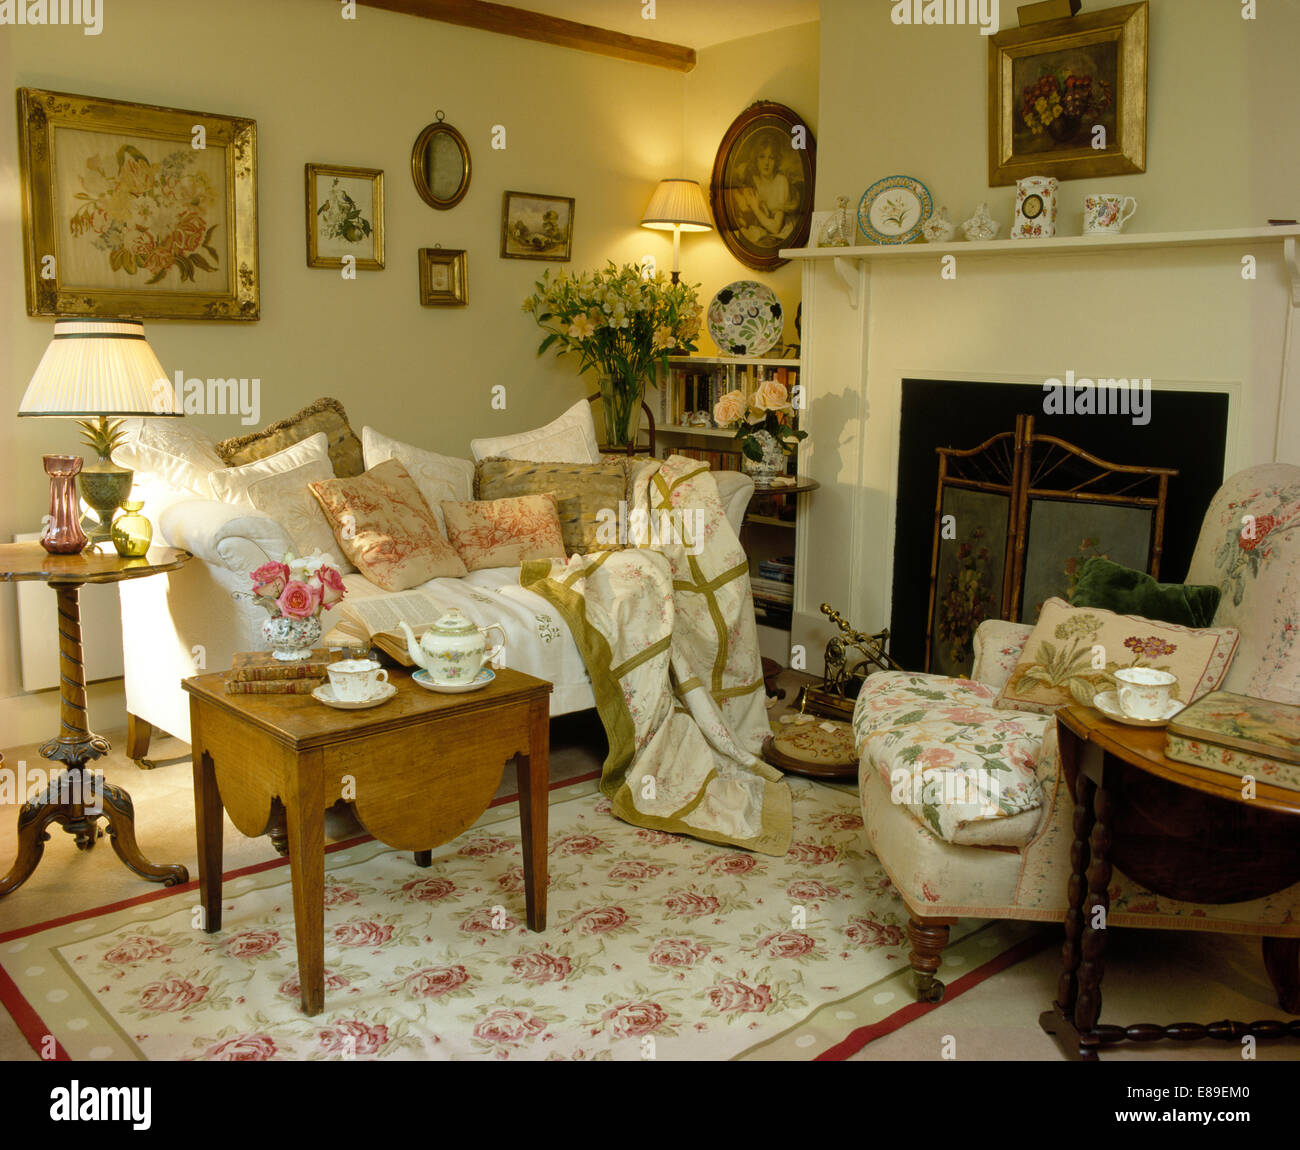 Lovely Cushions And Throw On White Sofa In Cottage Living Room With Rose Patterned  Rug And Small